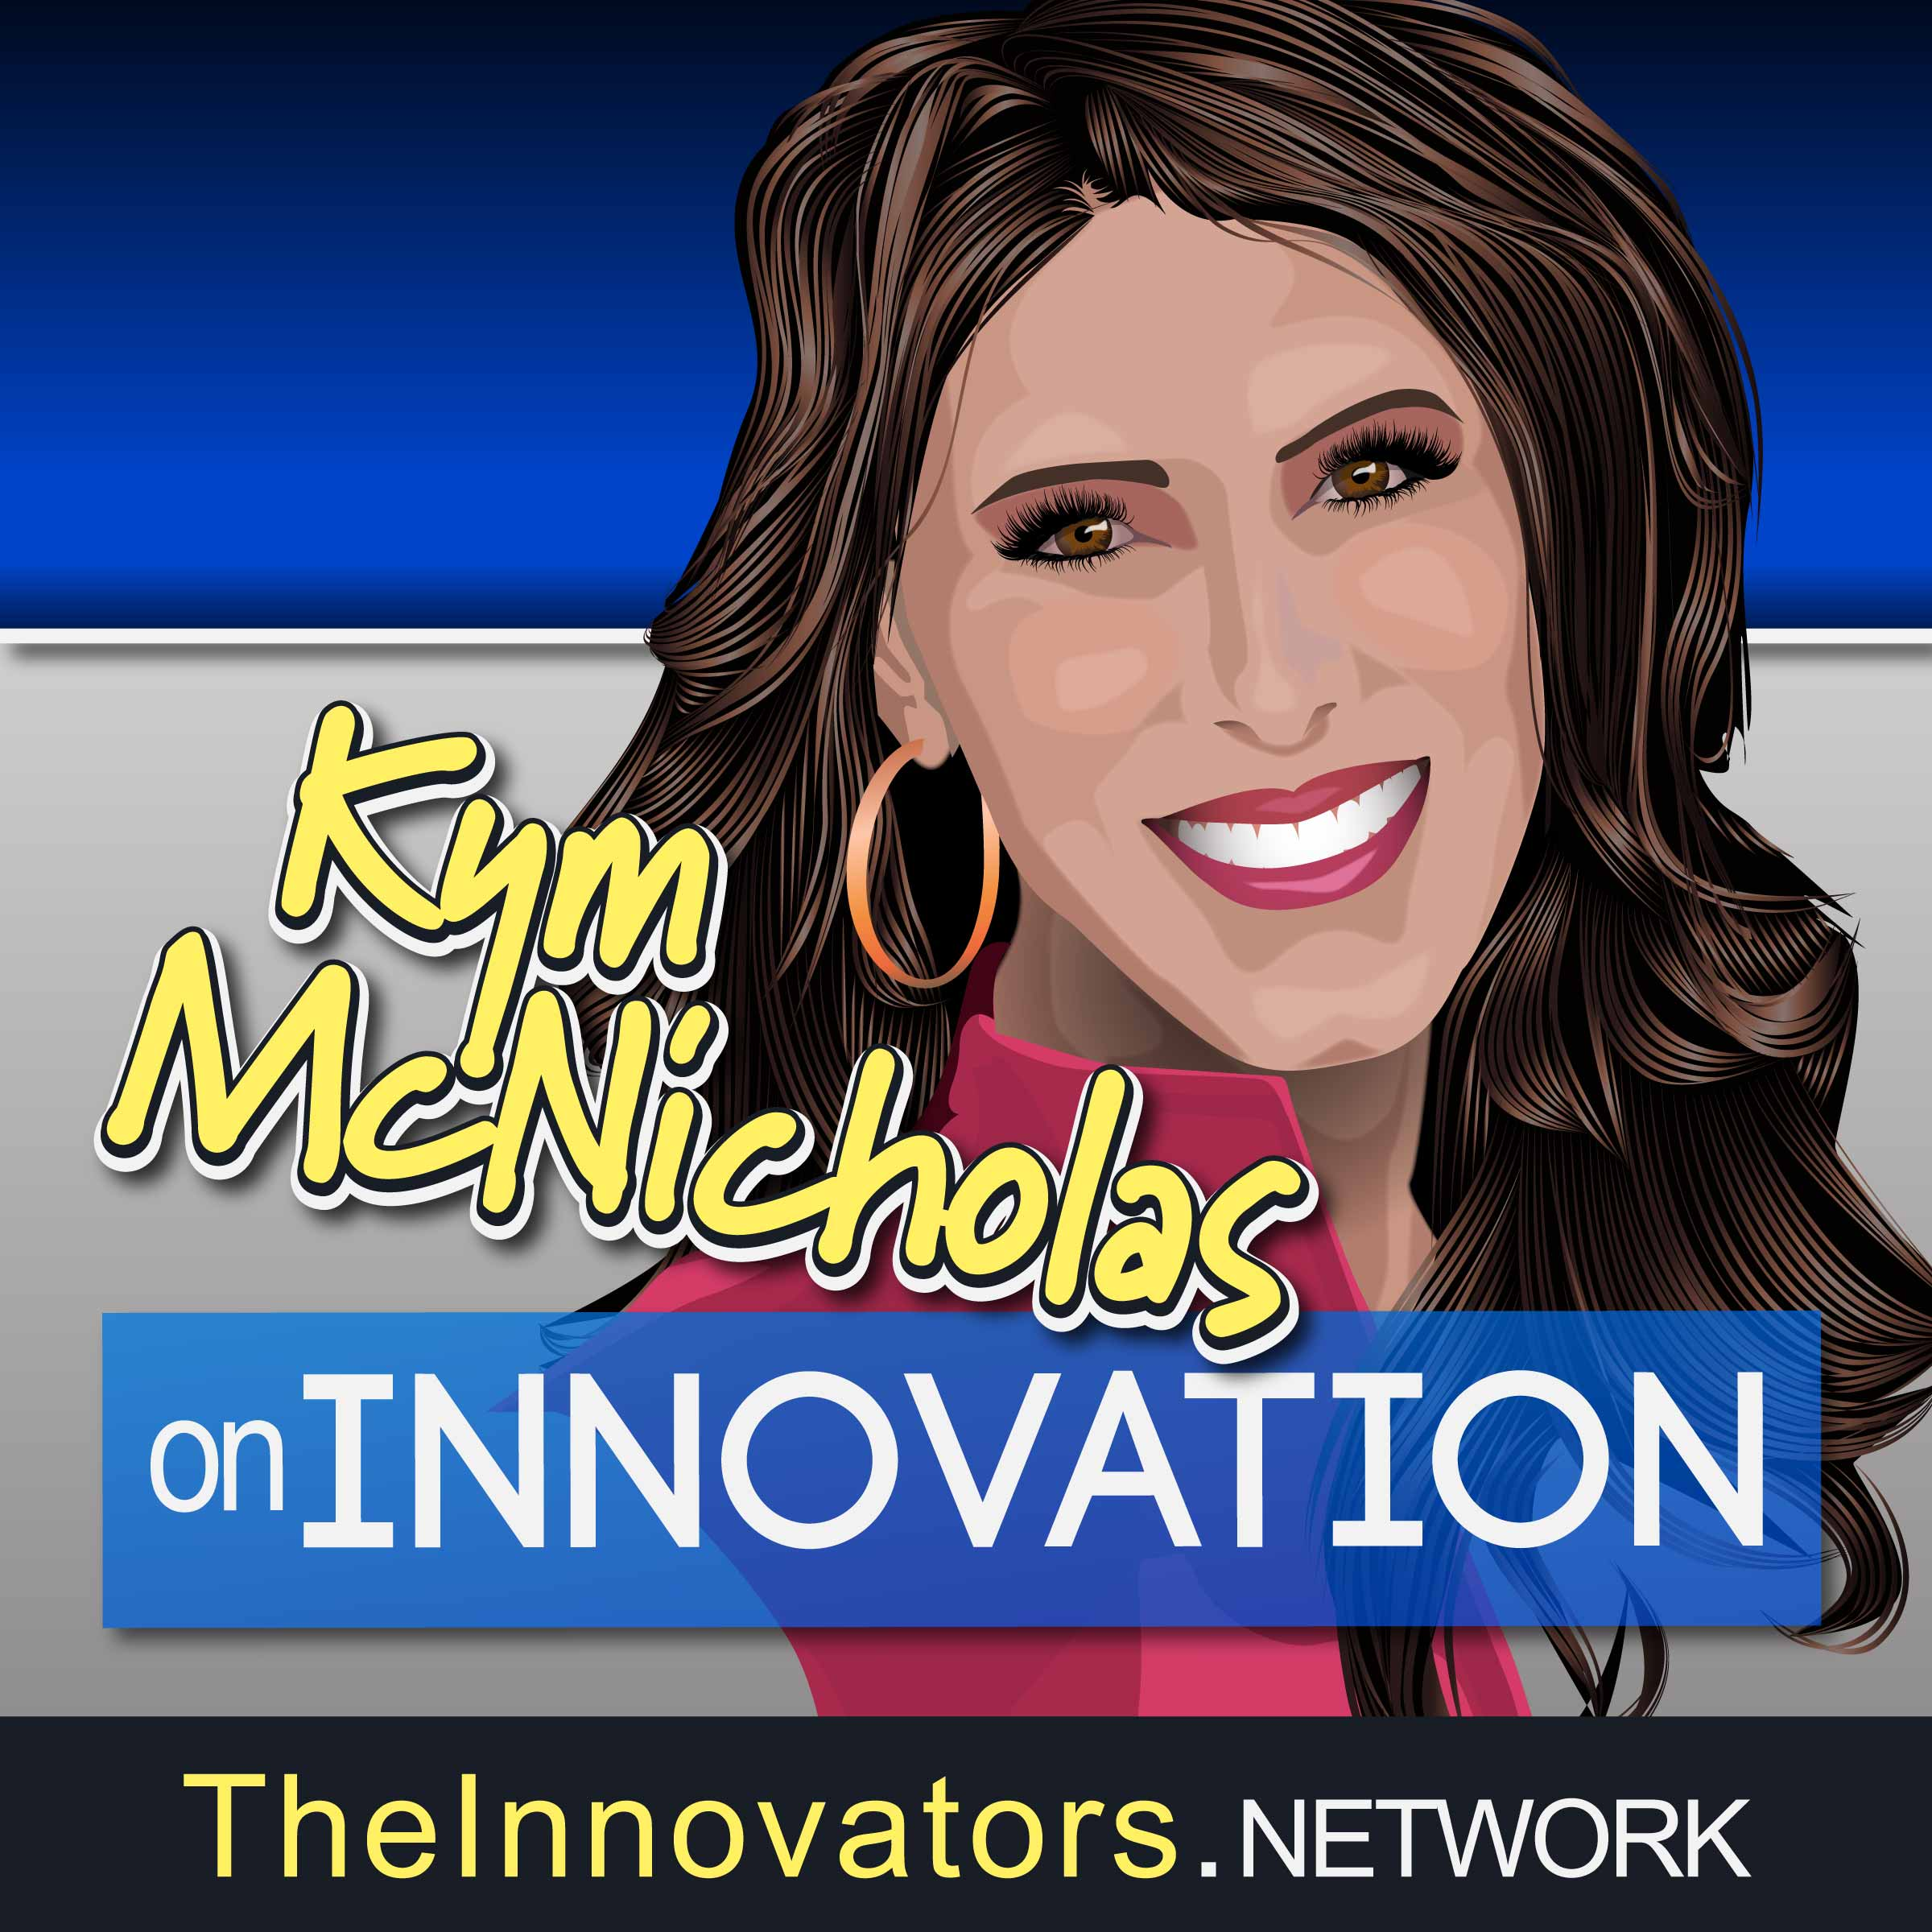 Subscribe to Kym McNicholas on Innovation